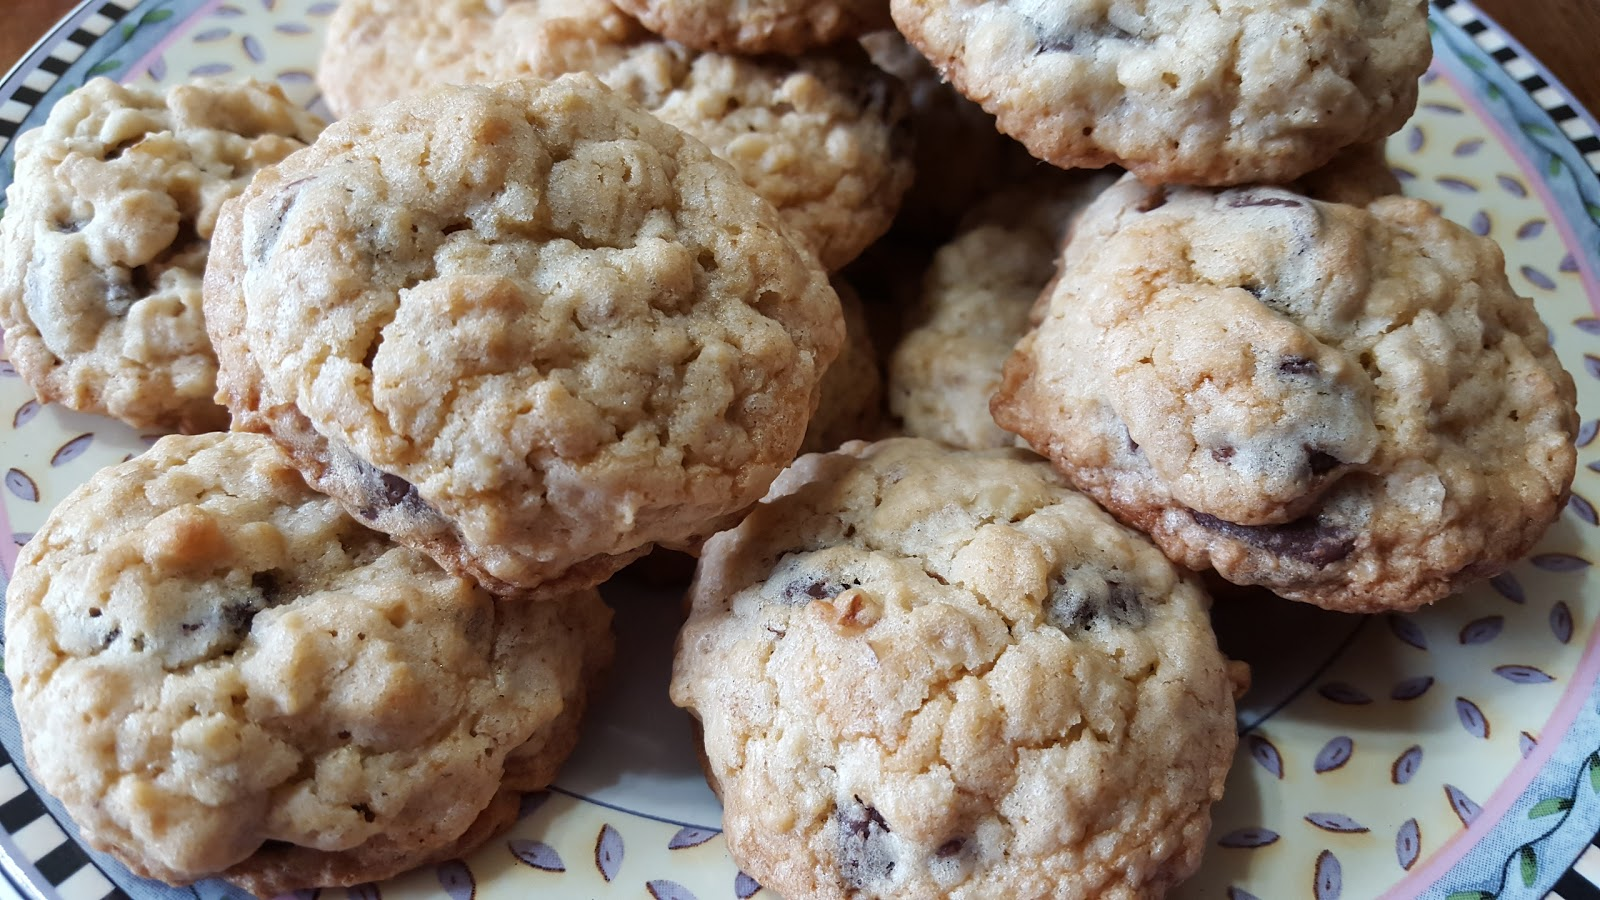 oatmeal chocolate chip cookies 1 2 cup granulated sugar 1